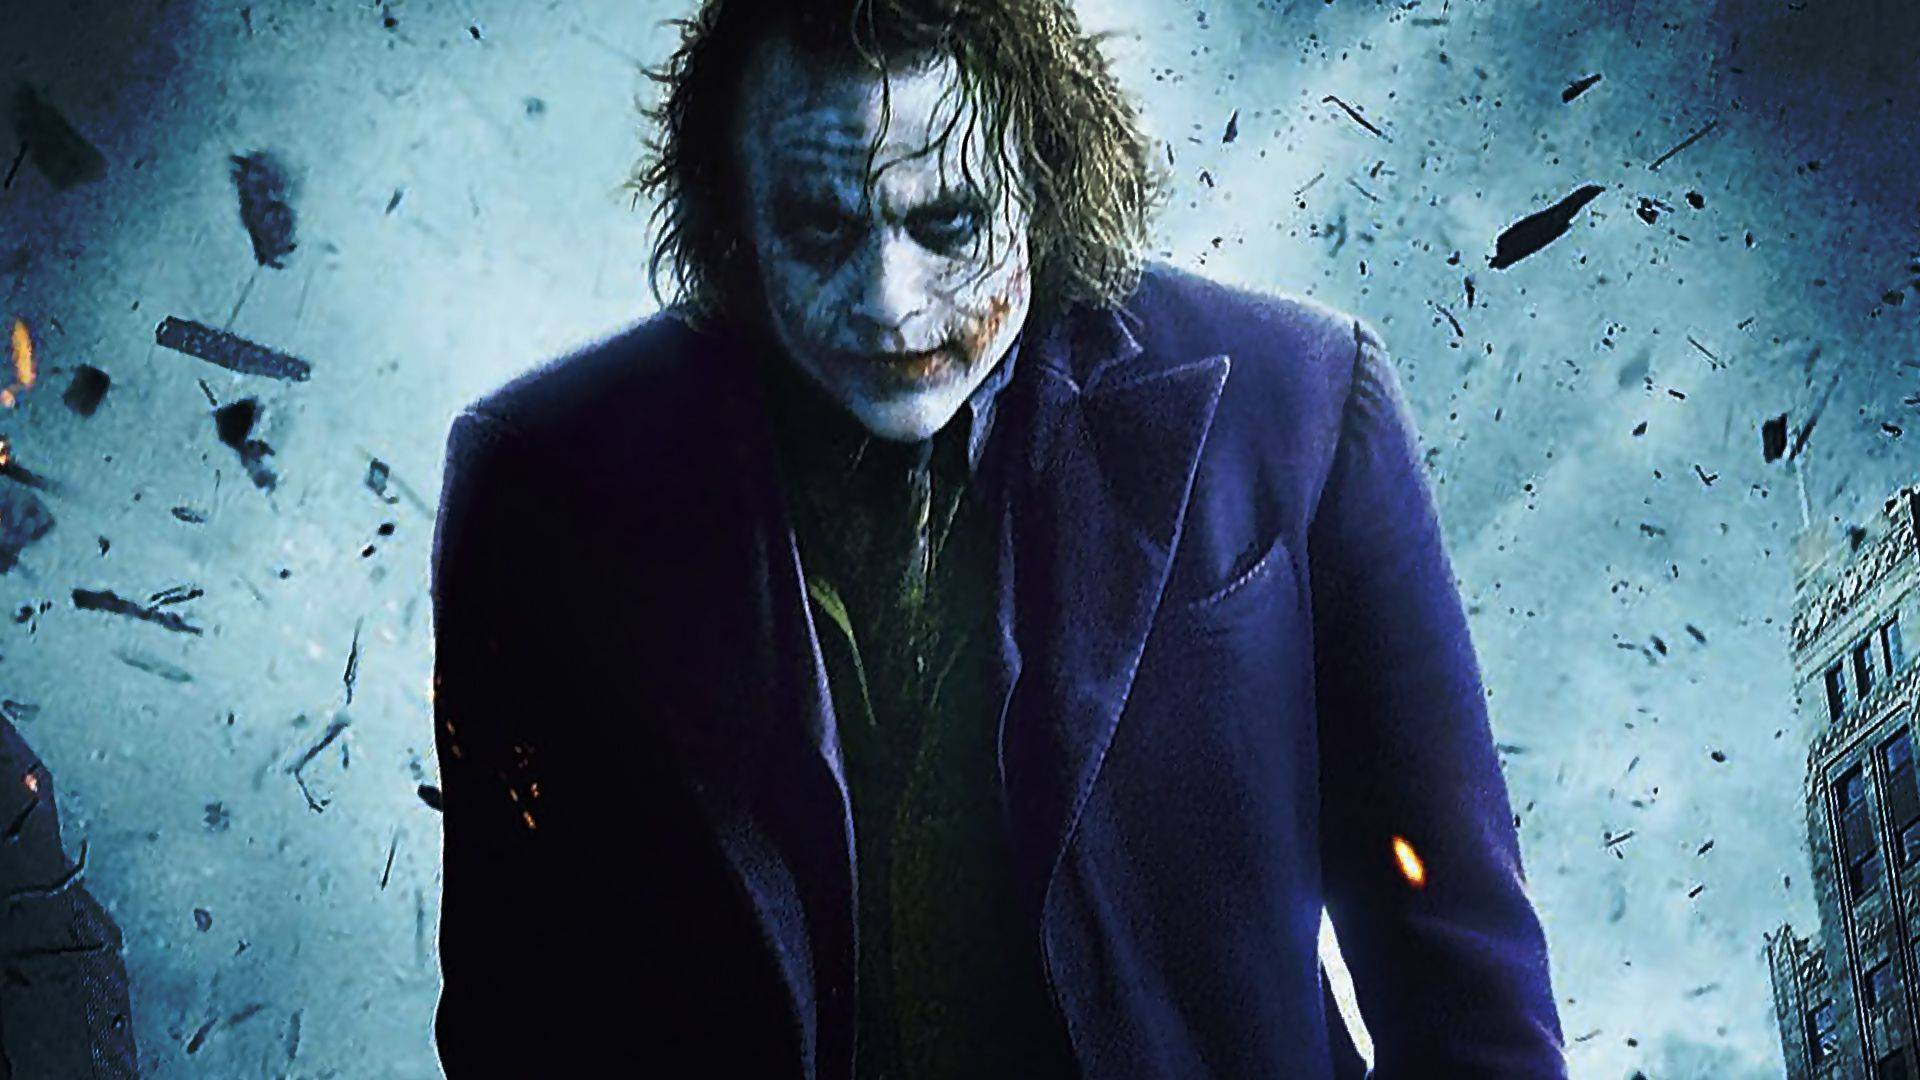 The Joker The Dark Knight   Heath Ledger Heath Ledger played one of 1920x1080